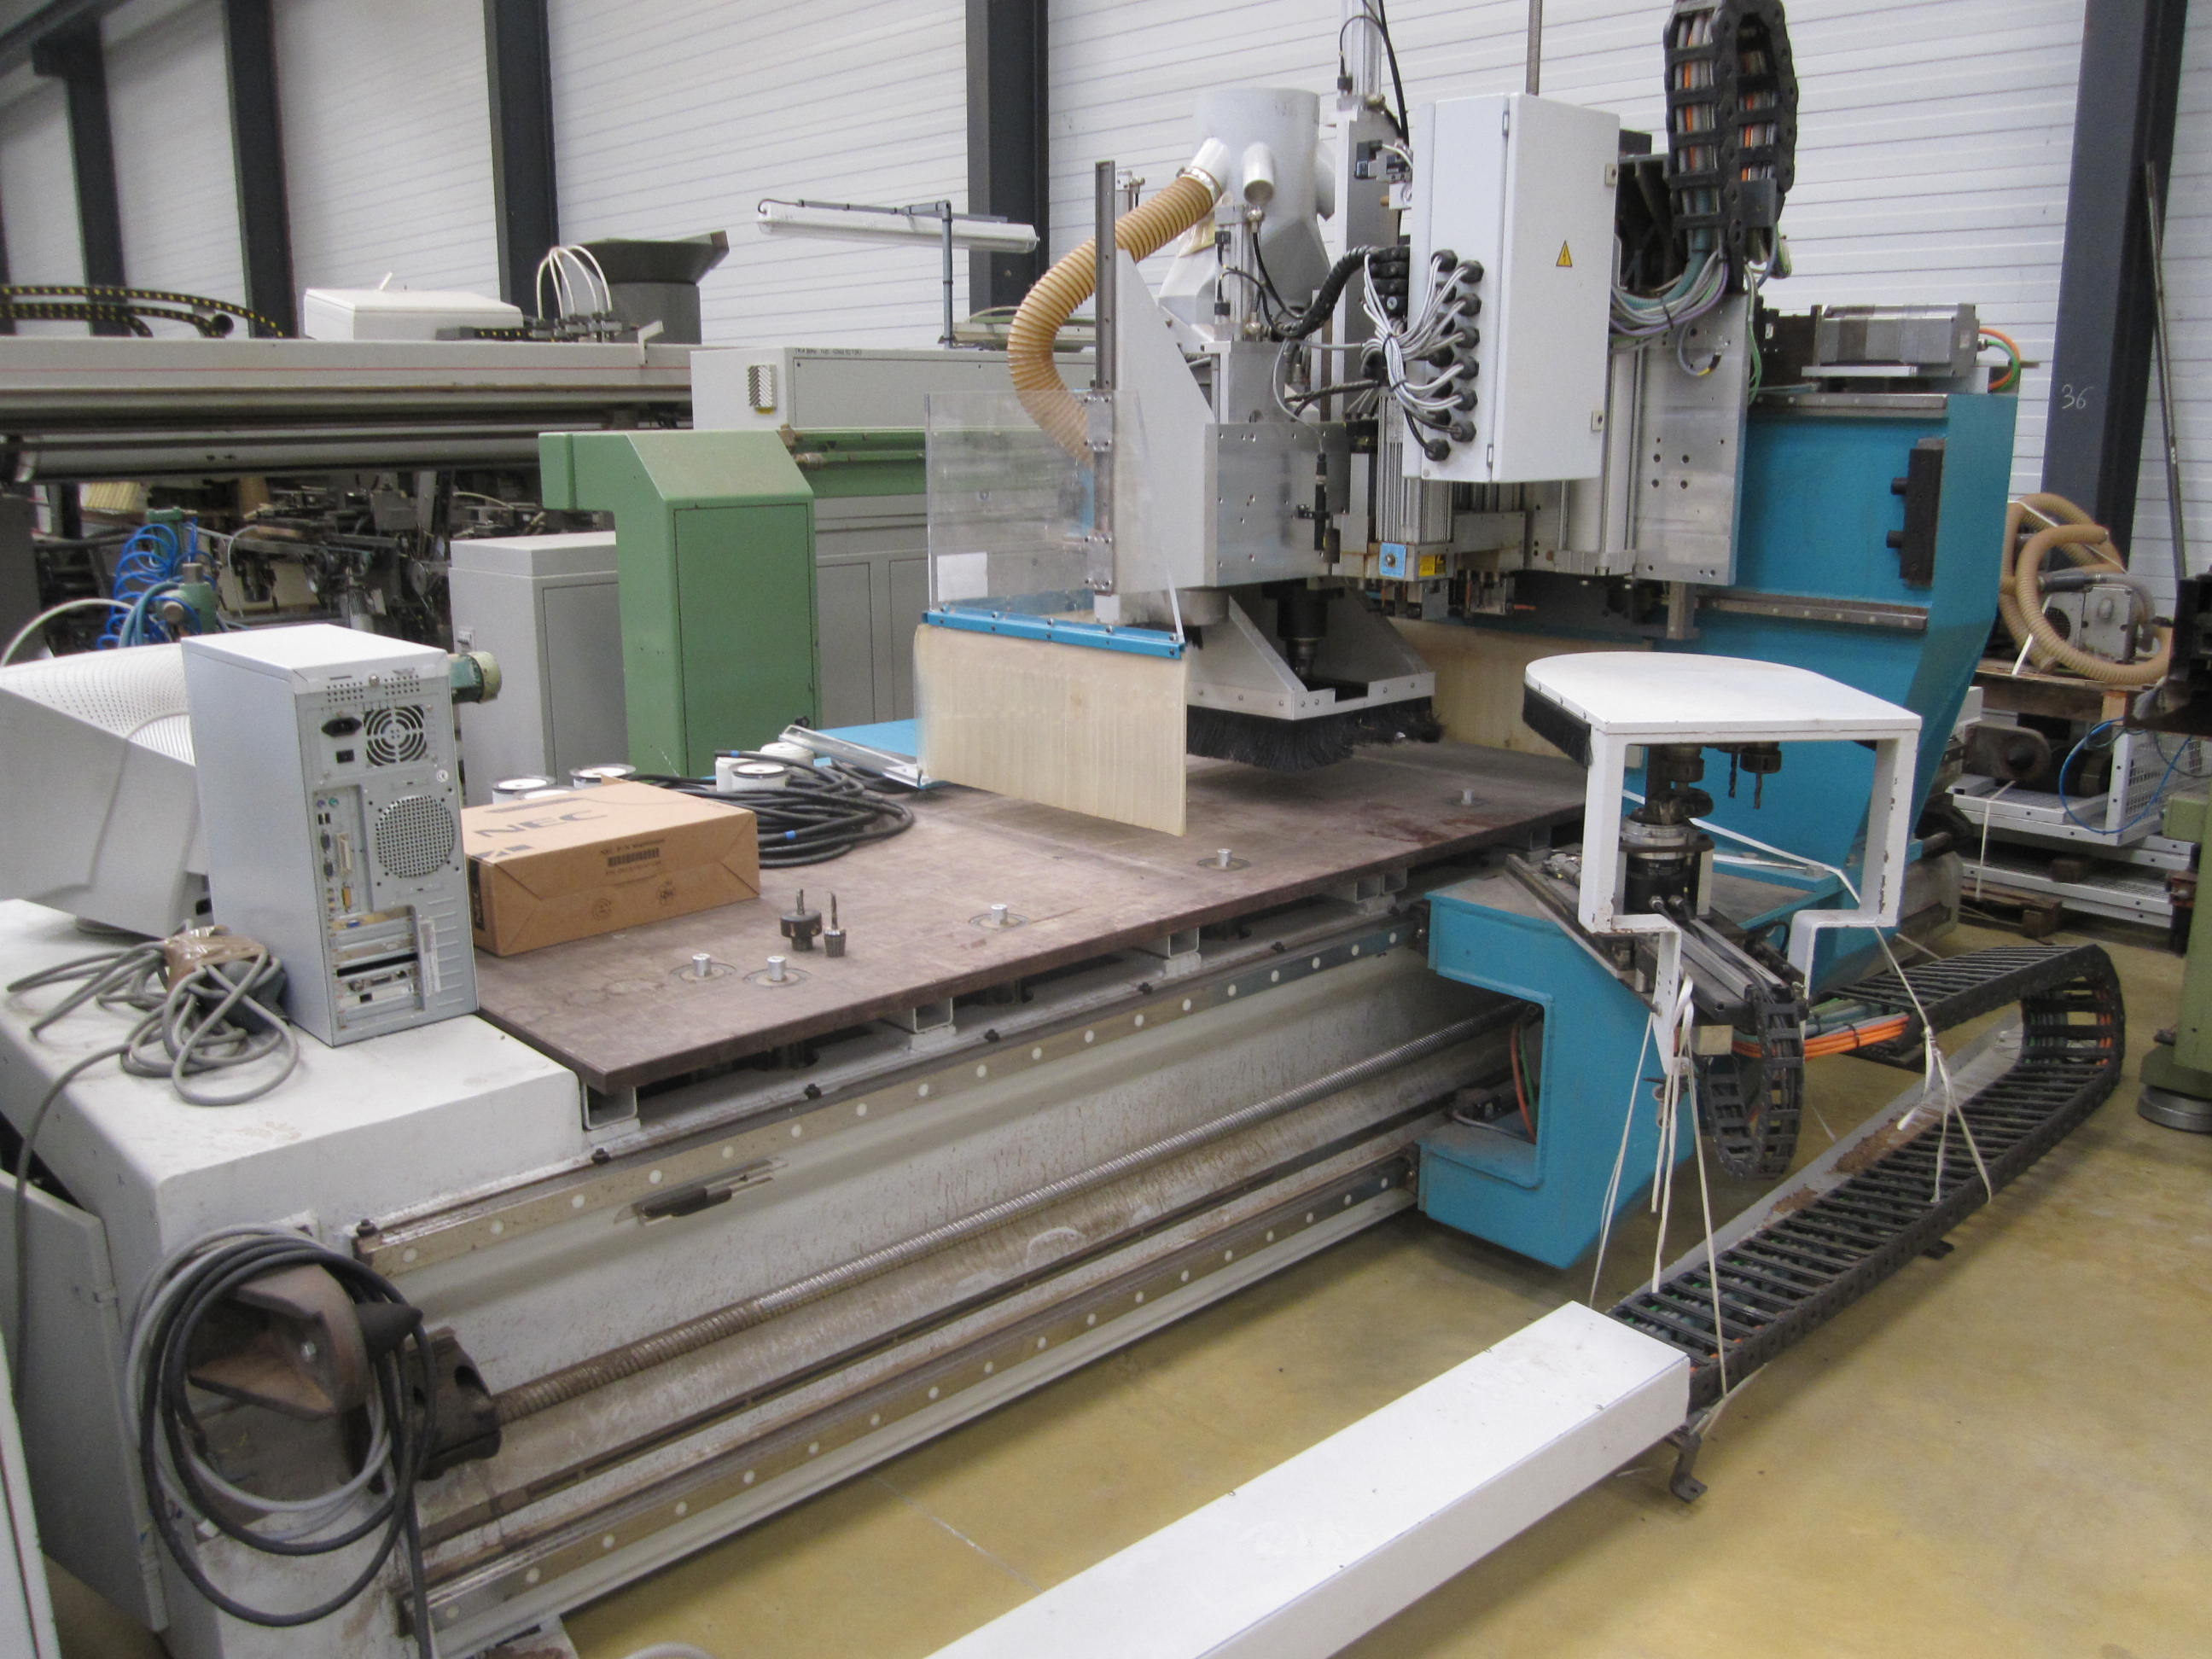 HOLZ HER Unimaster 7217 Wood CNC machining centre - Exapro